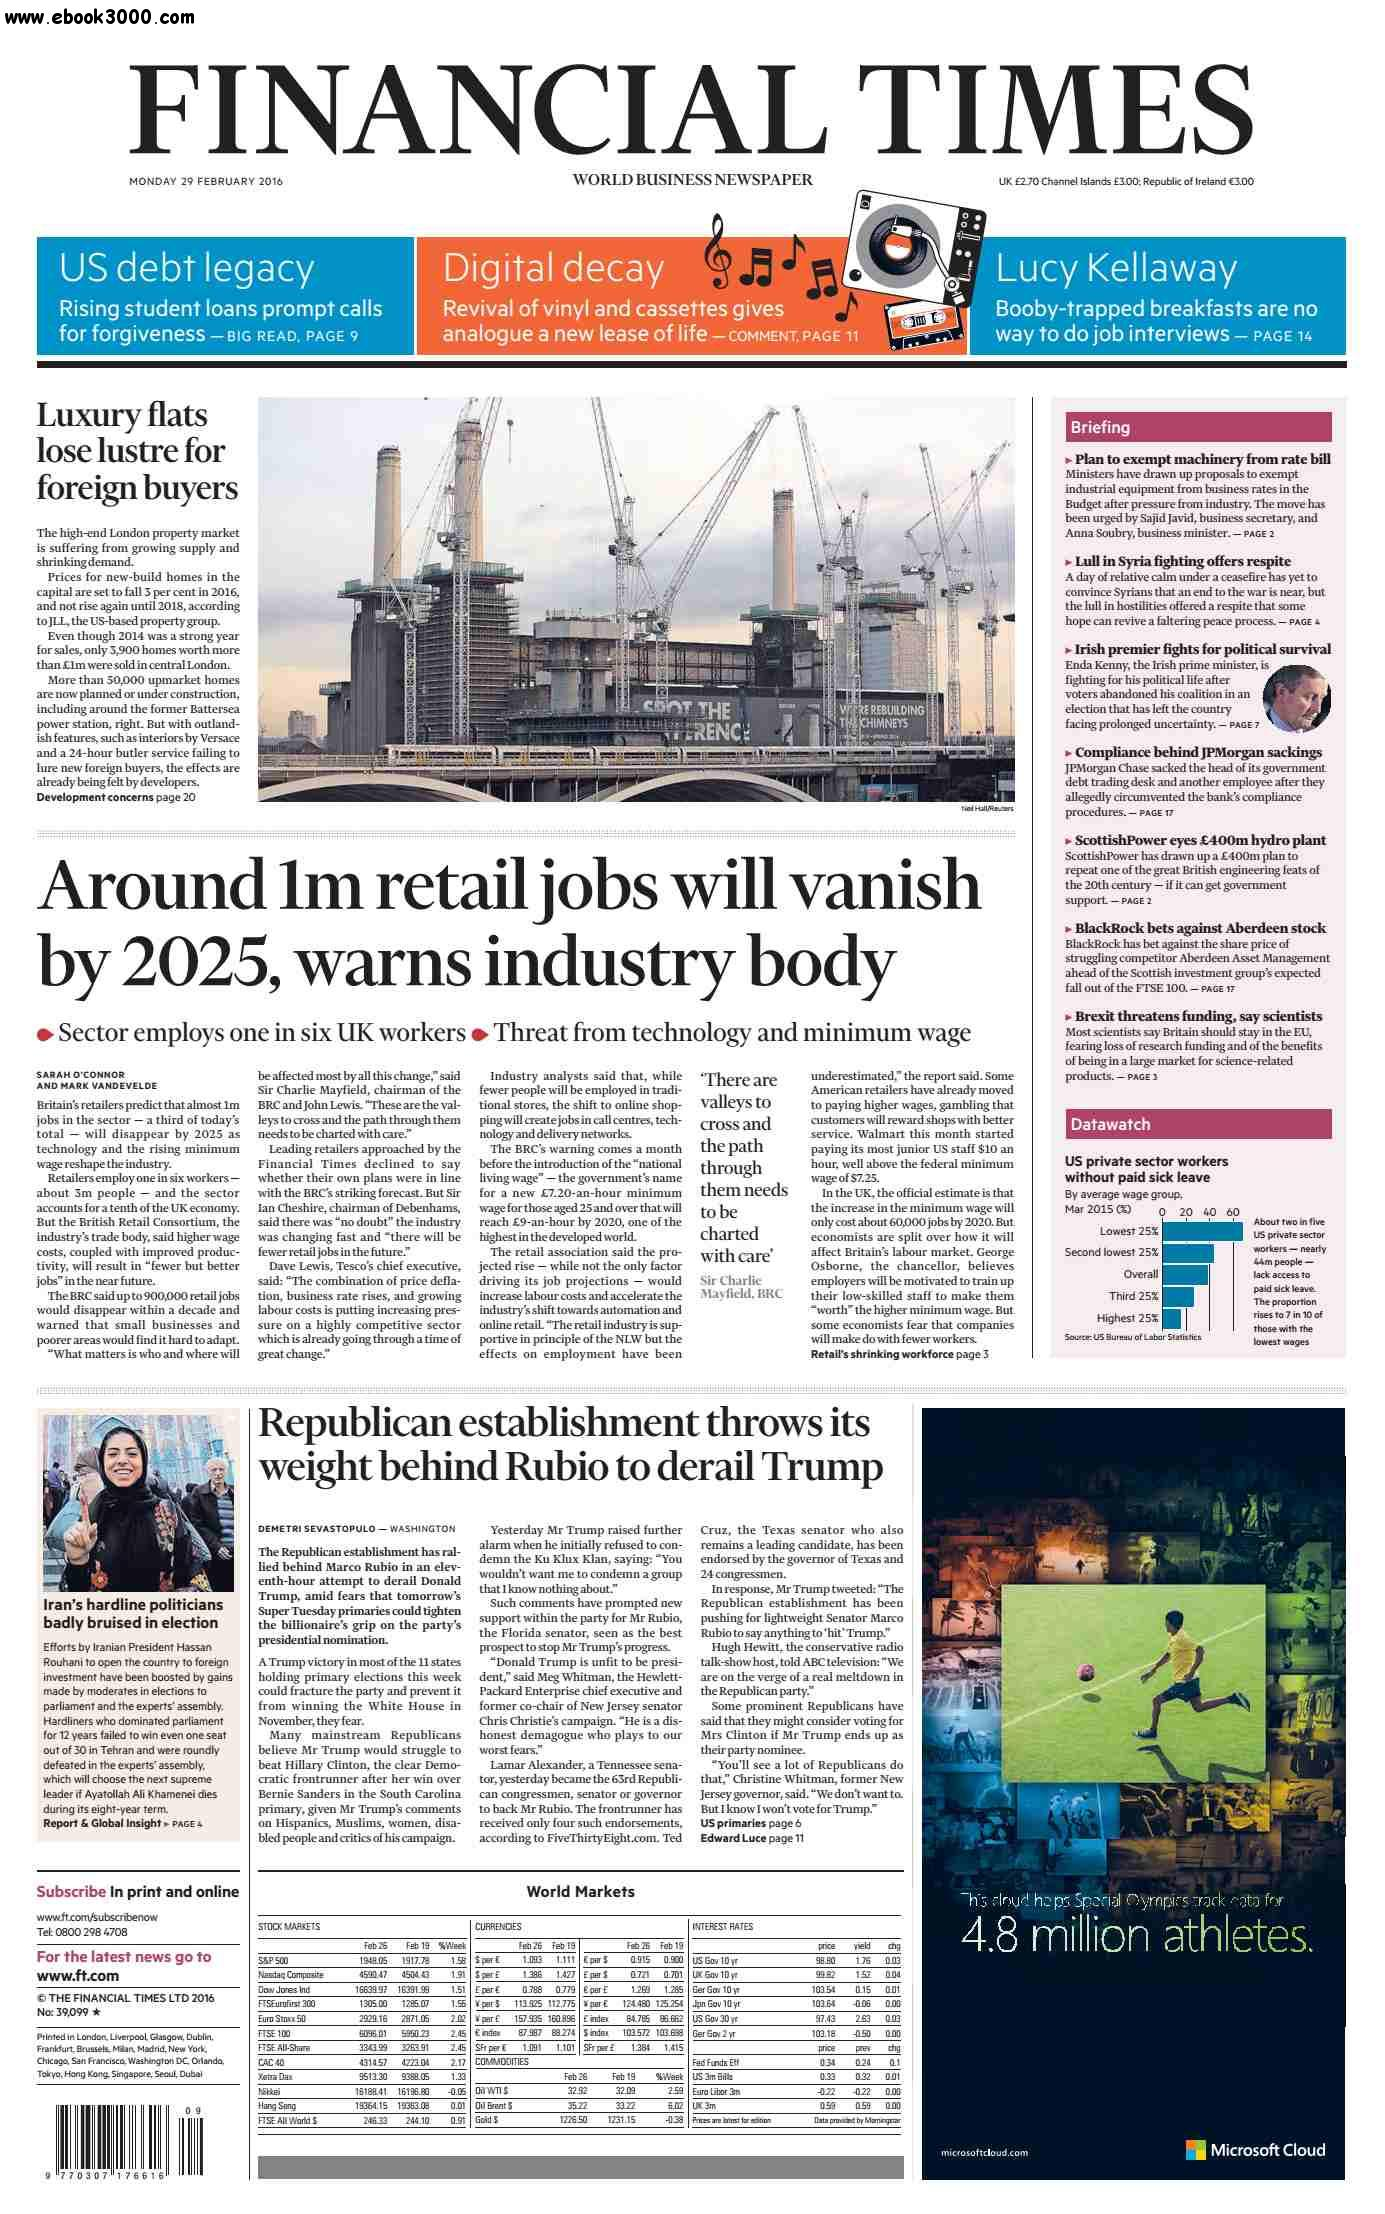 Financial Times UK February 29 2016 free download